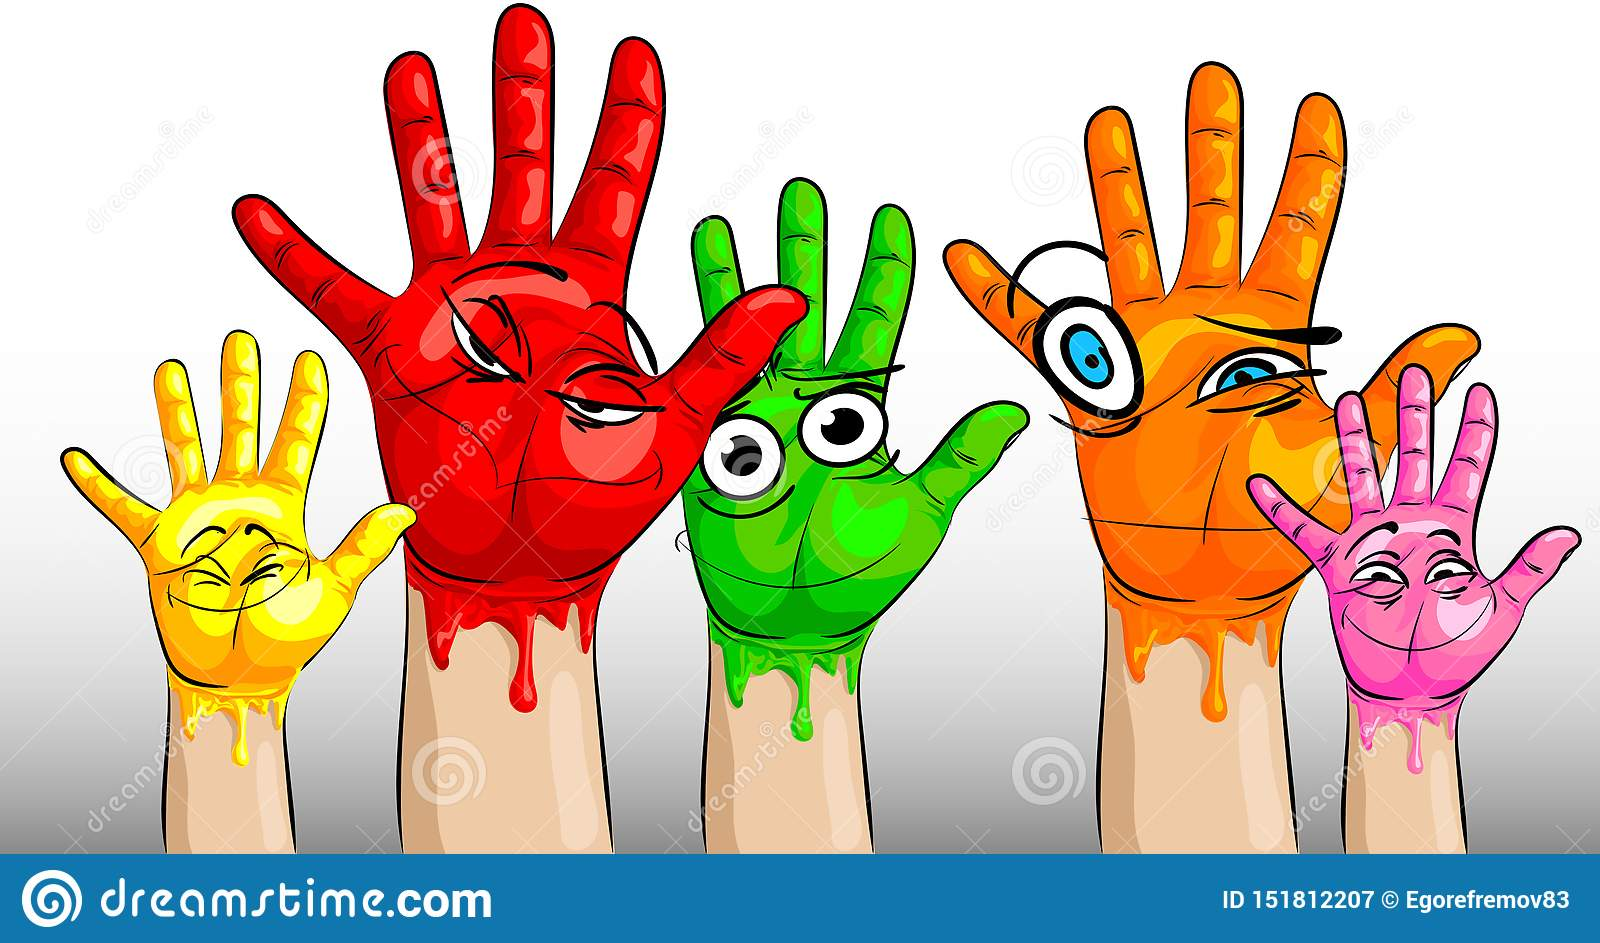 Many hands in multi-colored paint and with funny and funny faces on the palms